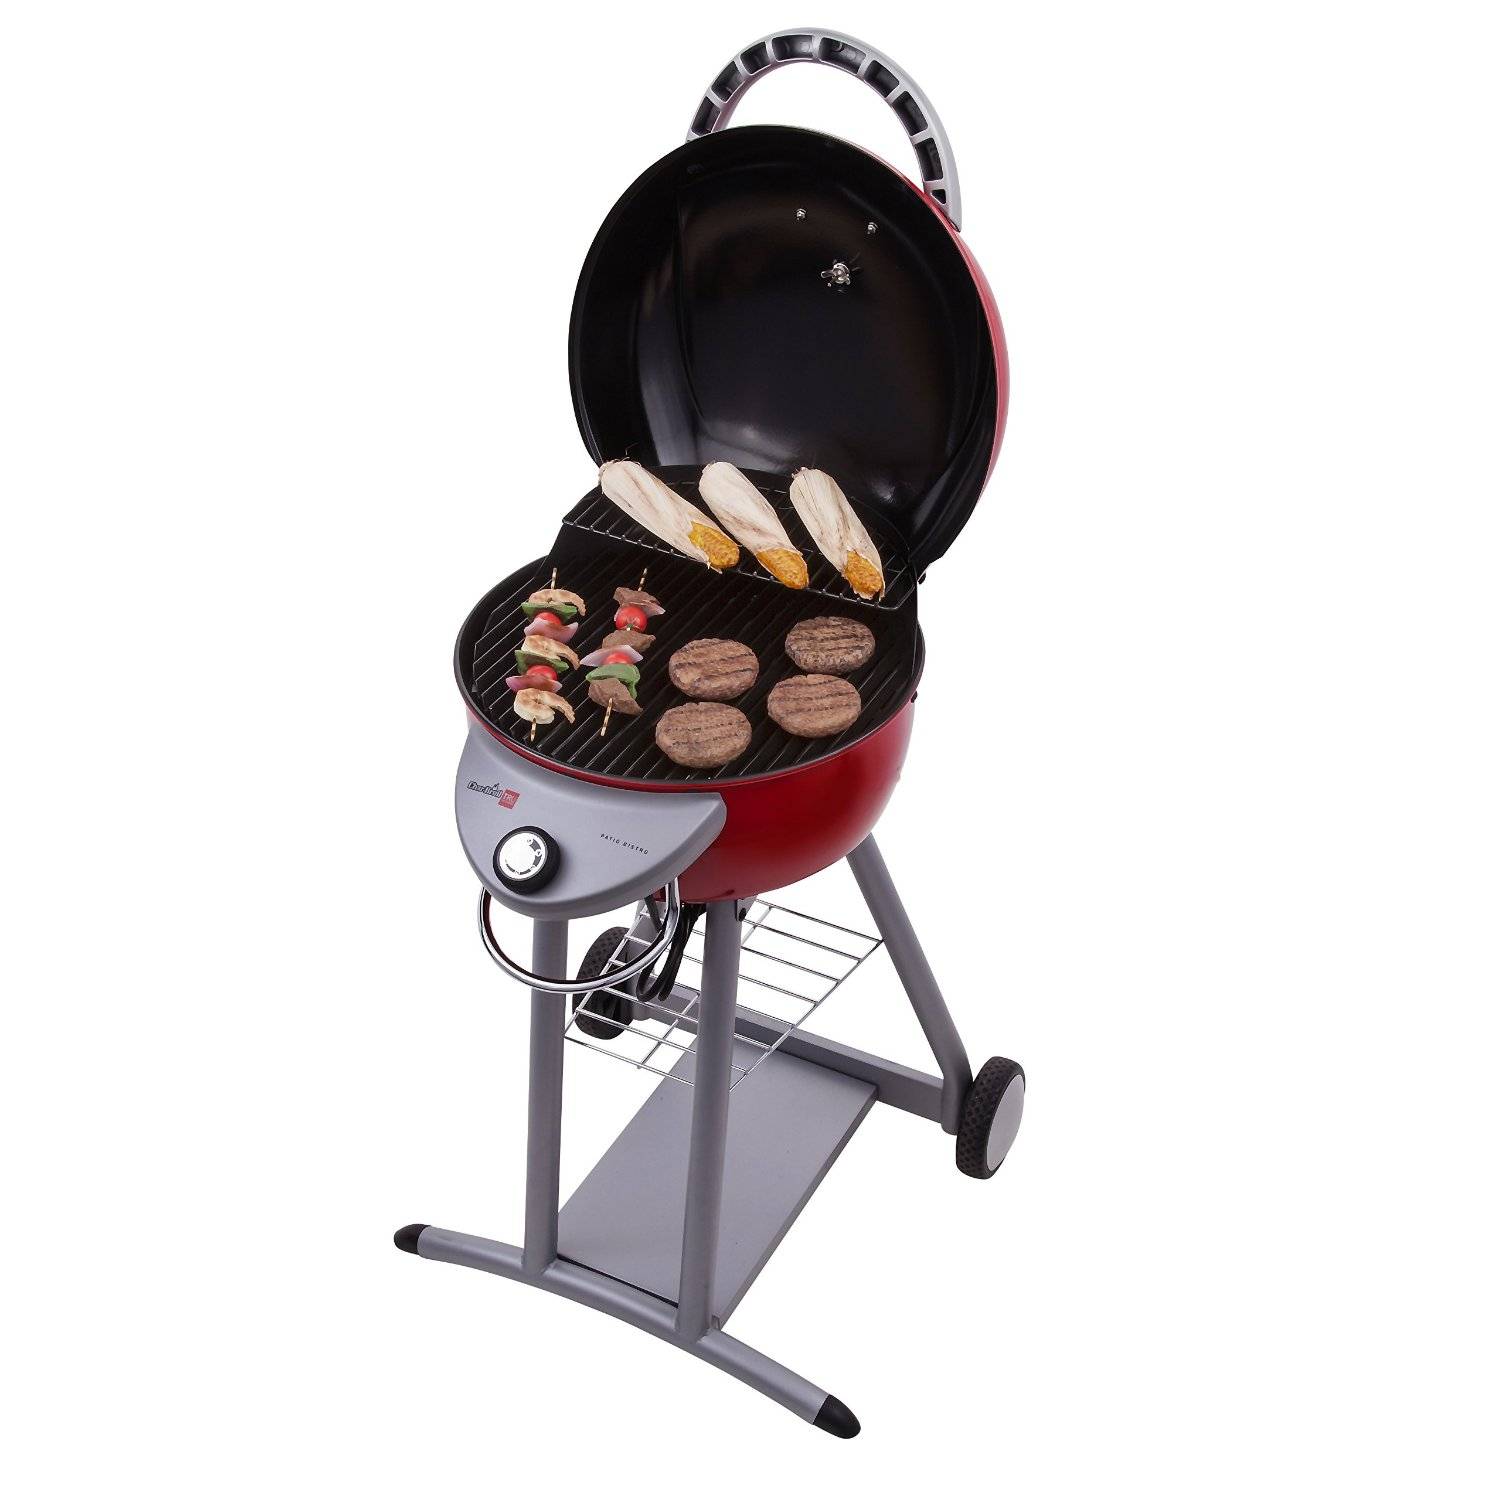 Merveilleux Char Broil TRU Infrared Patio Bistro Electric Grill